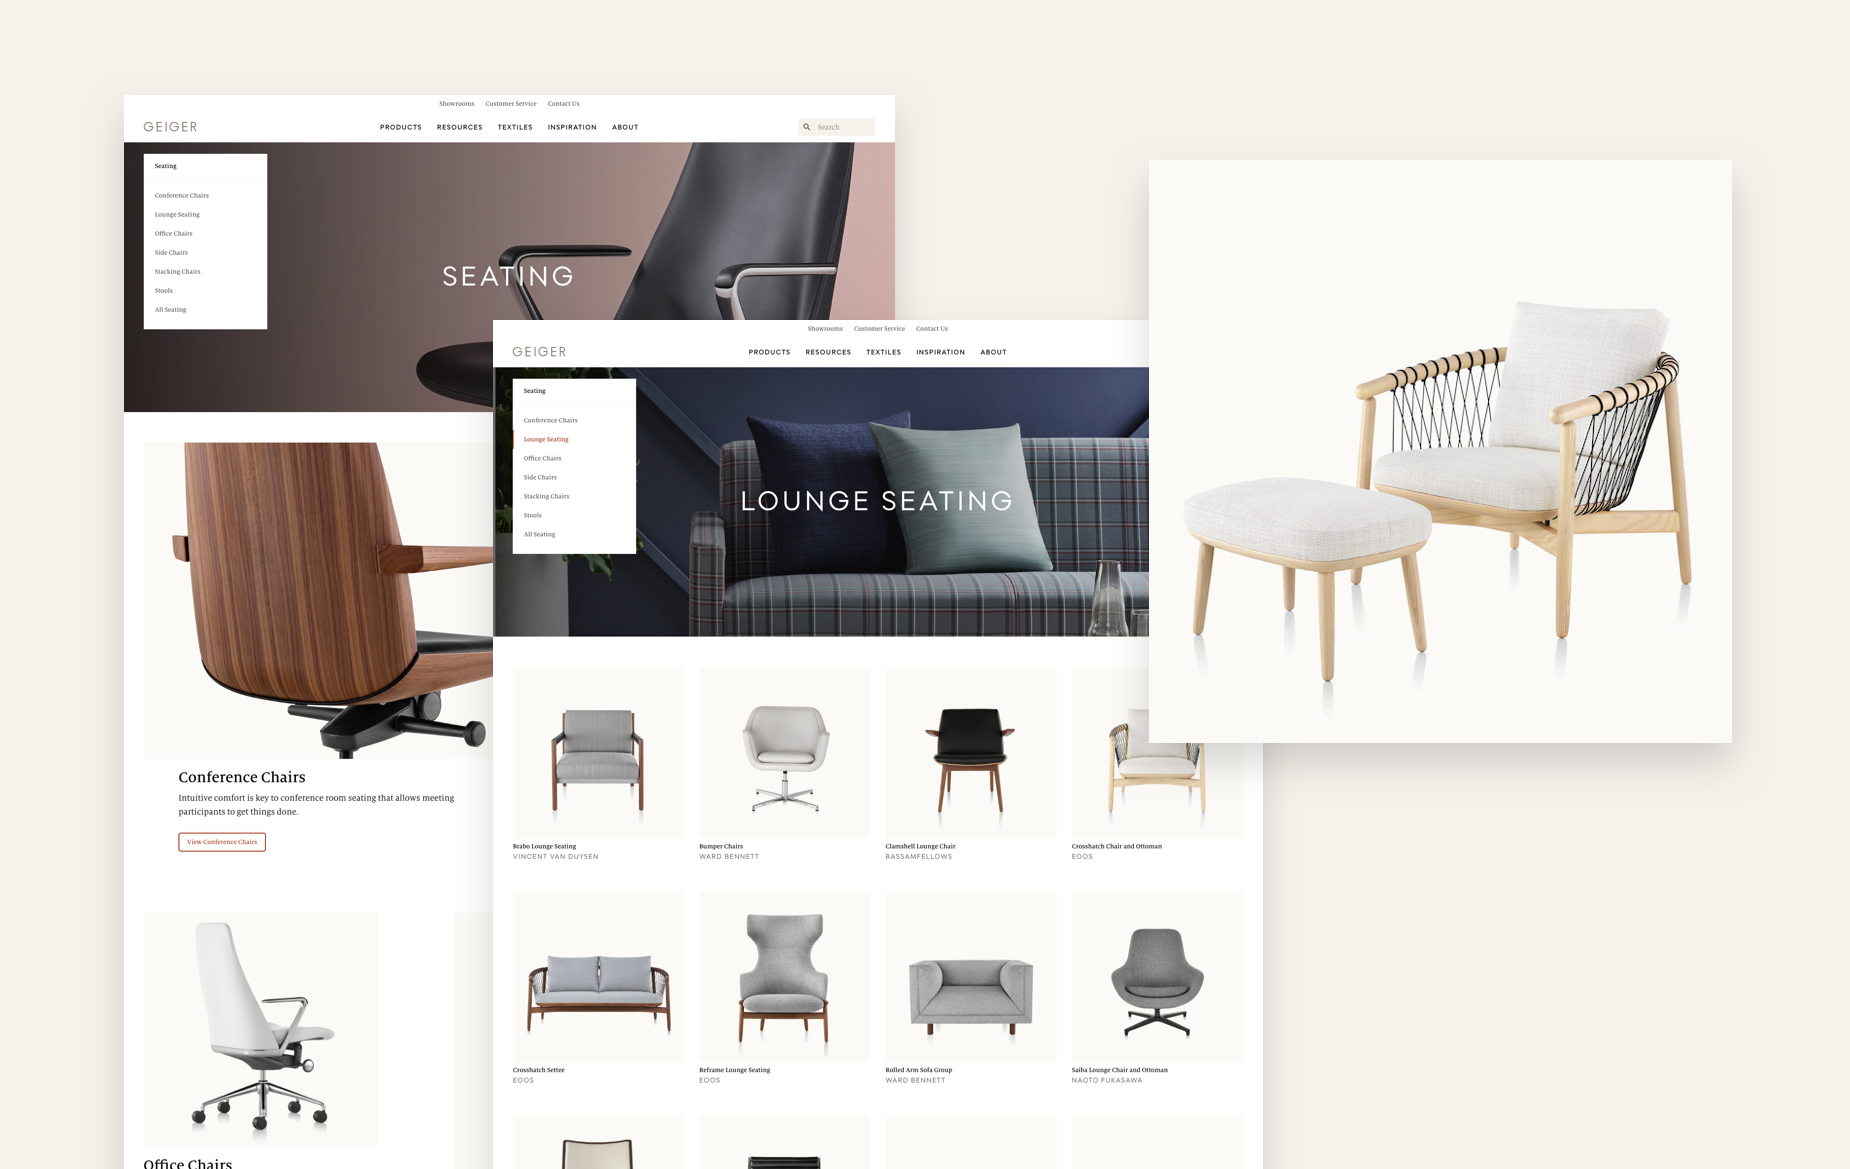 Examples Seating category page, Lounge Seating sub category page, and Crosshatch product page tile.